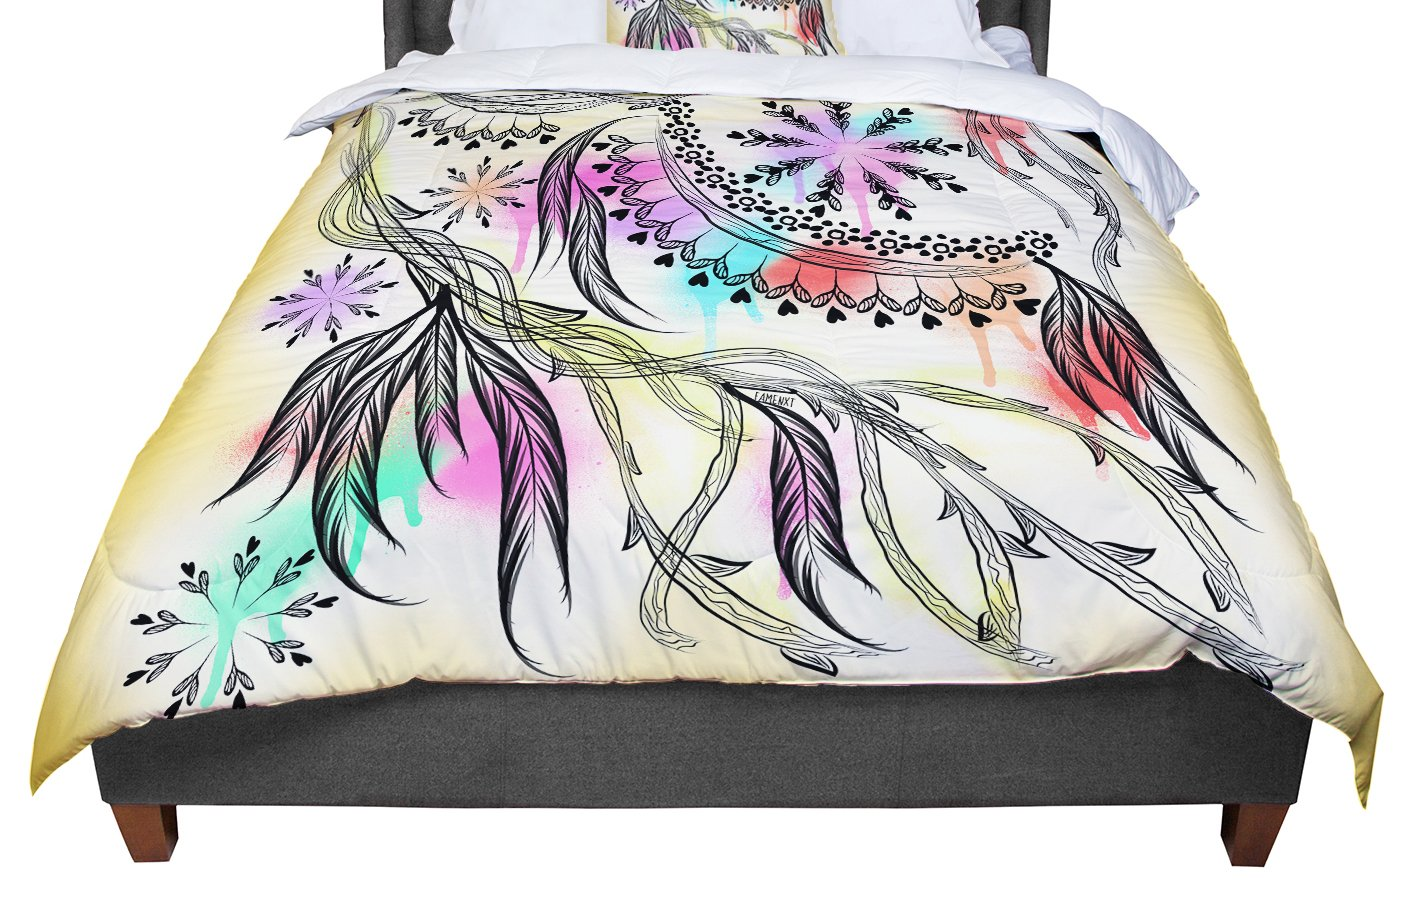 KESS InHouse Famenxt 'Birds World' White Pink King / Cal King Comforter, 104' X 88'